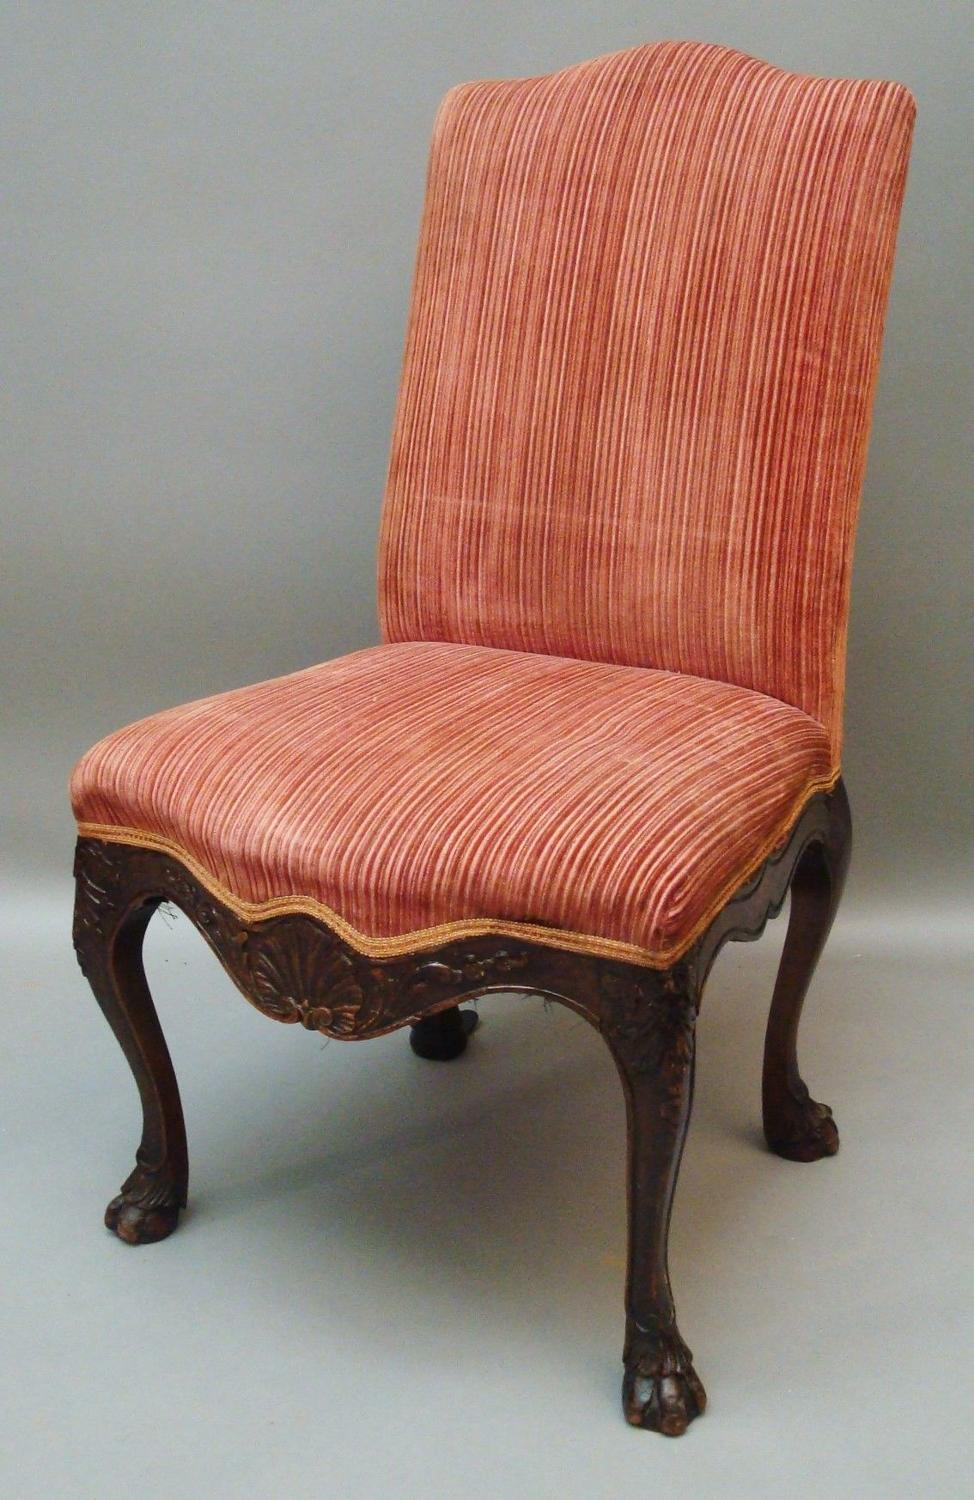 C18th Italian walnut side chair